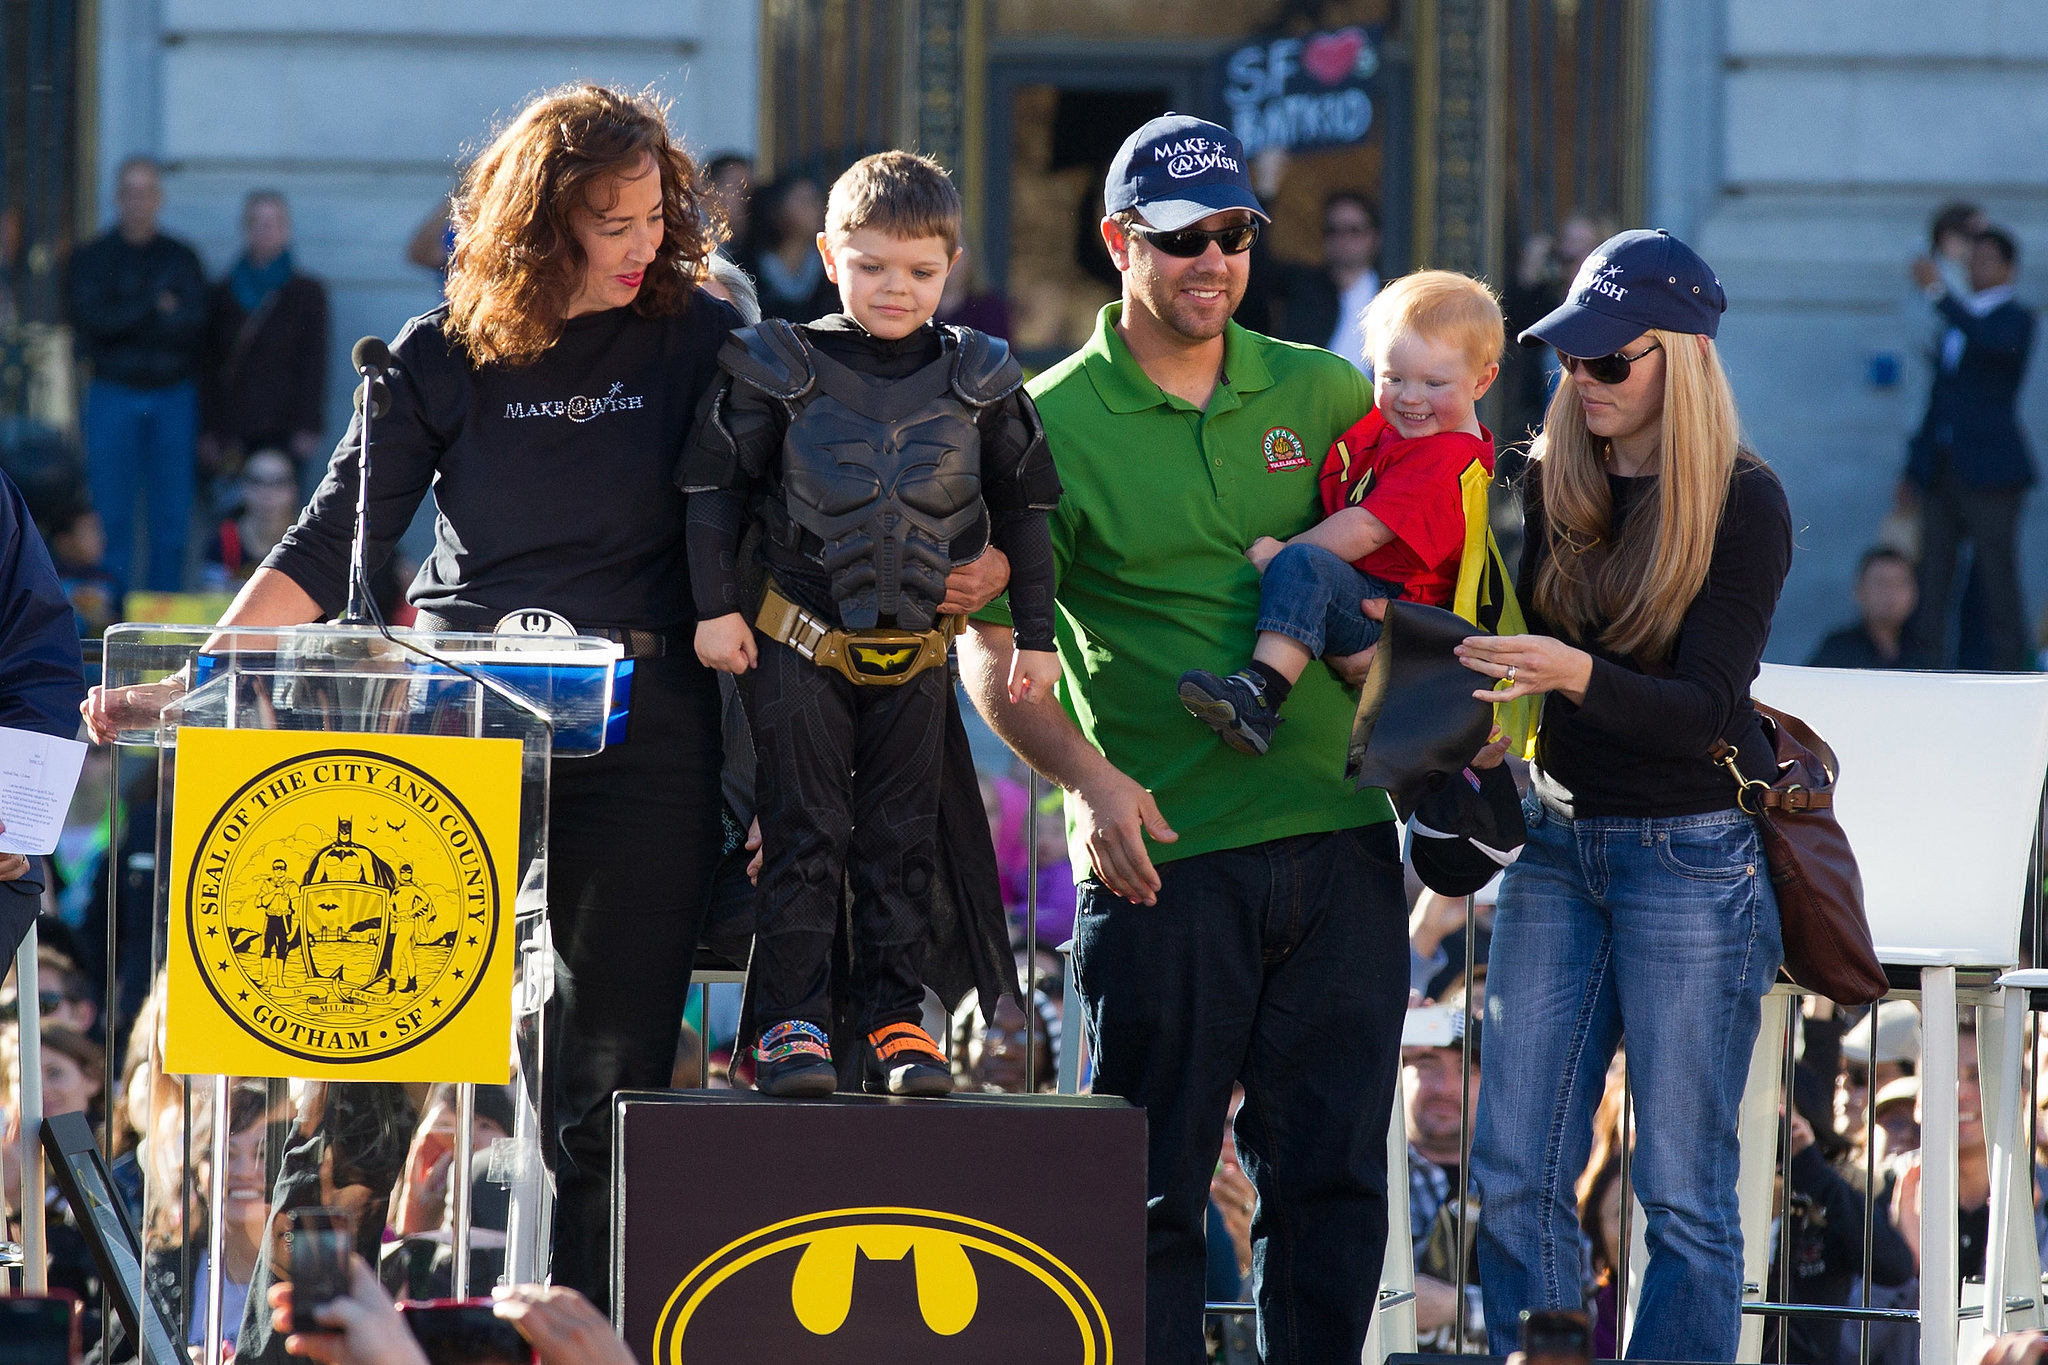 Batkid was joined on stage by his parents, Natalie and Nick Scott, plus his little brother, who was dressed as Robin.